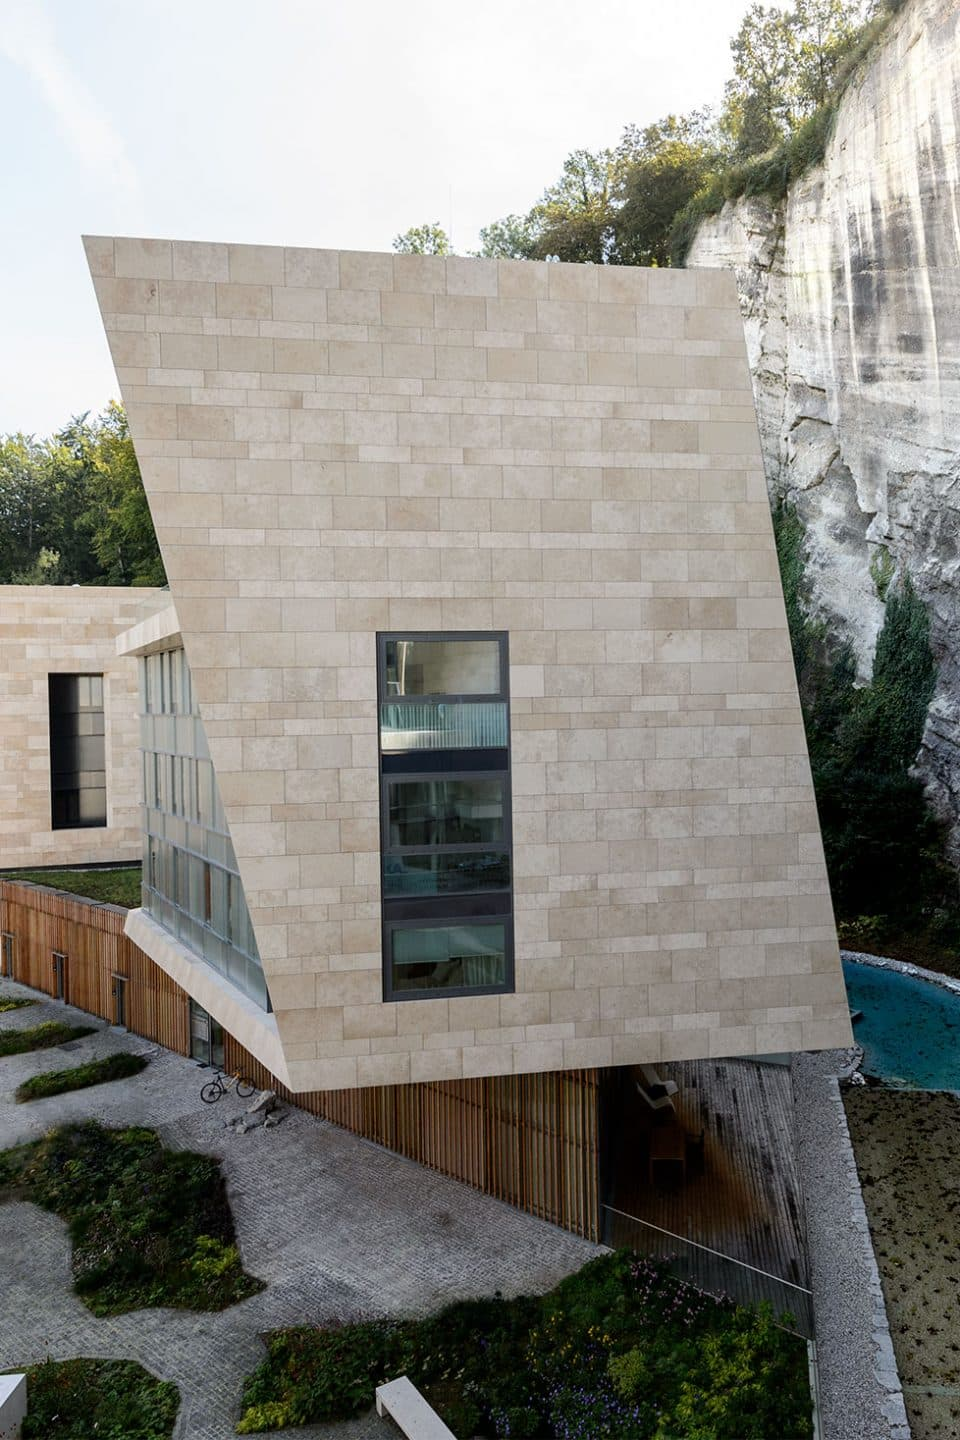 The Hariri Sisters Put a Persian Spin on Architecture and Design